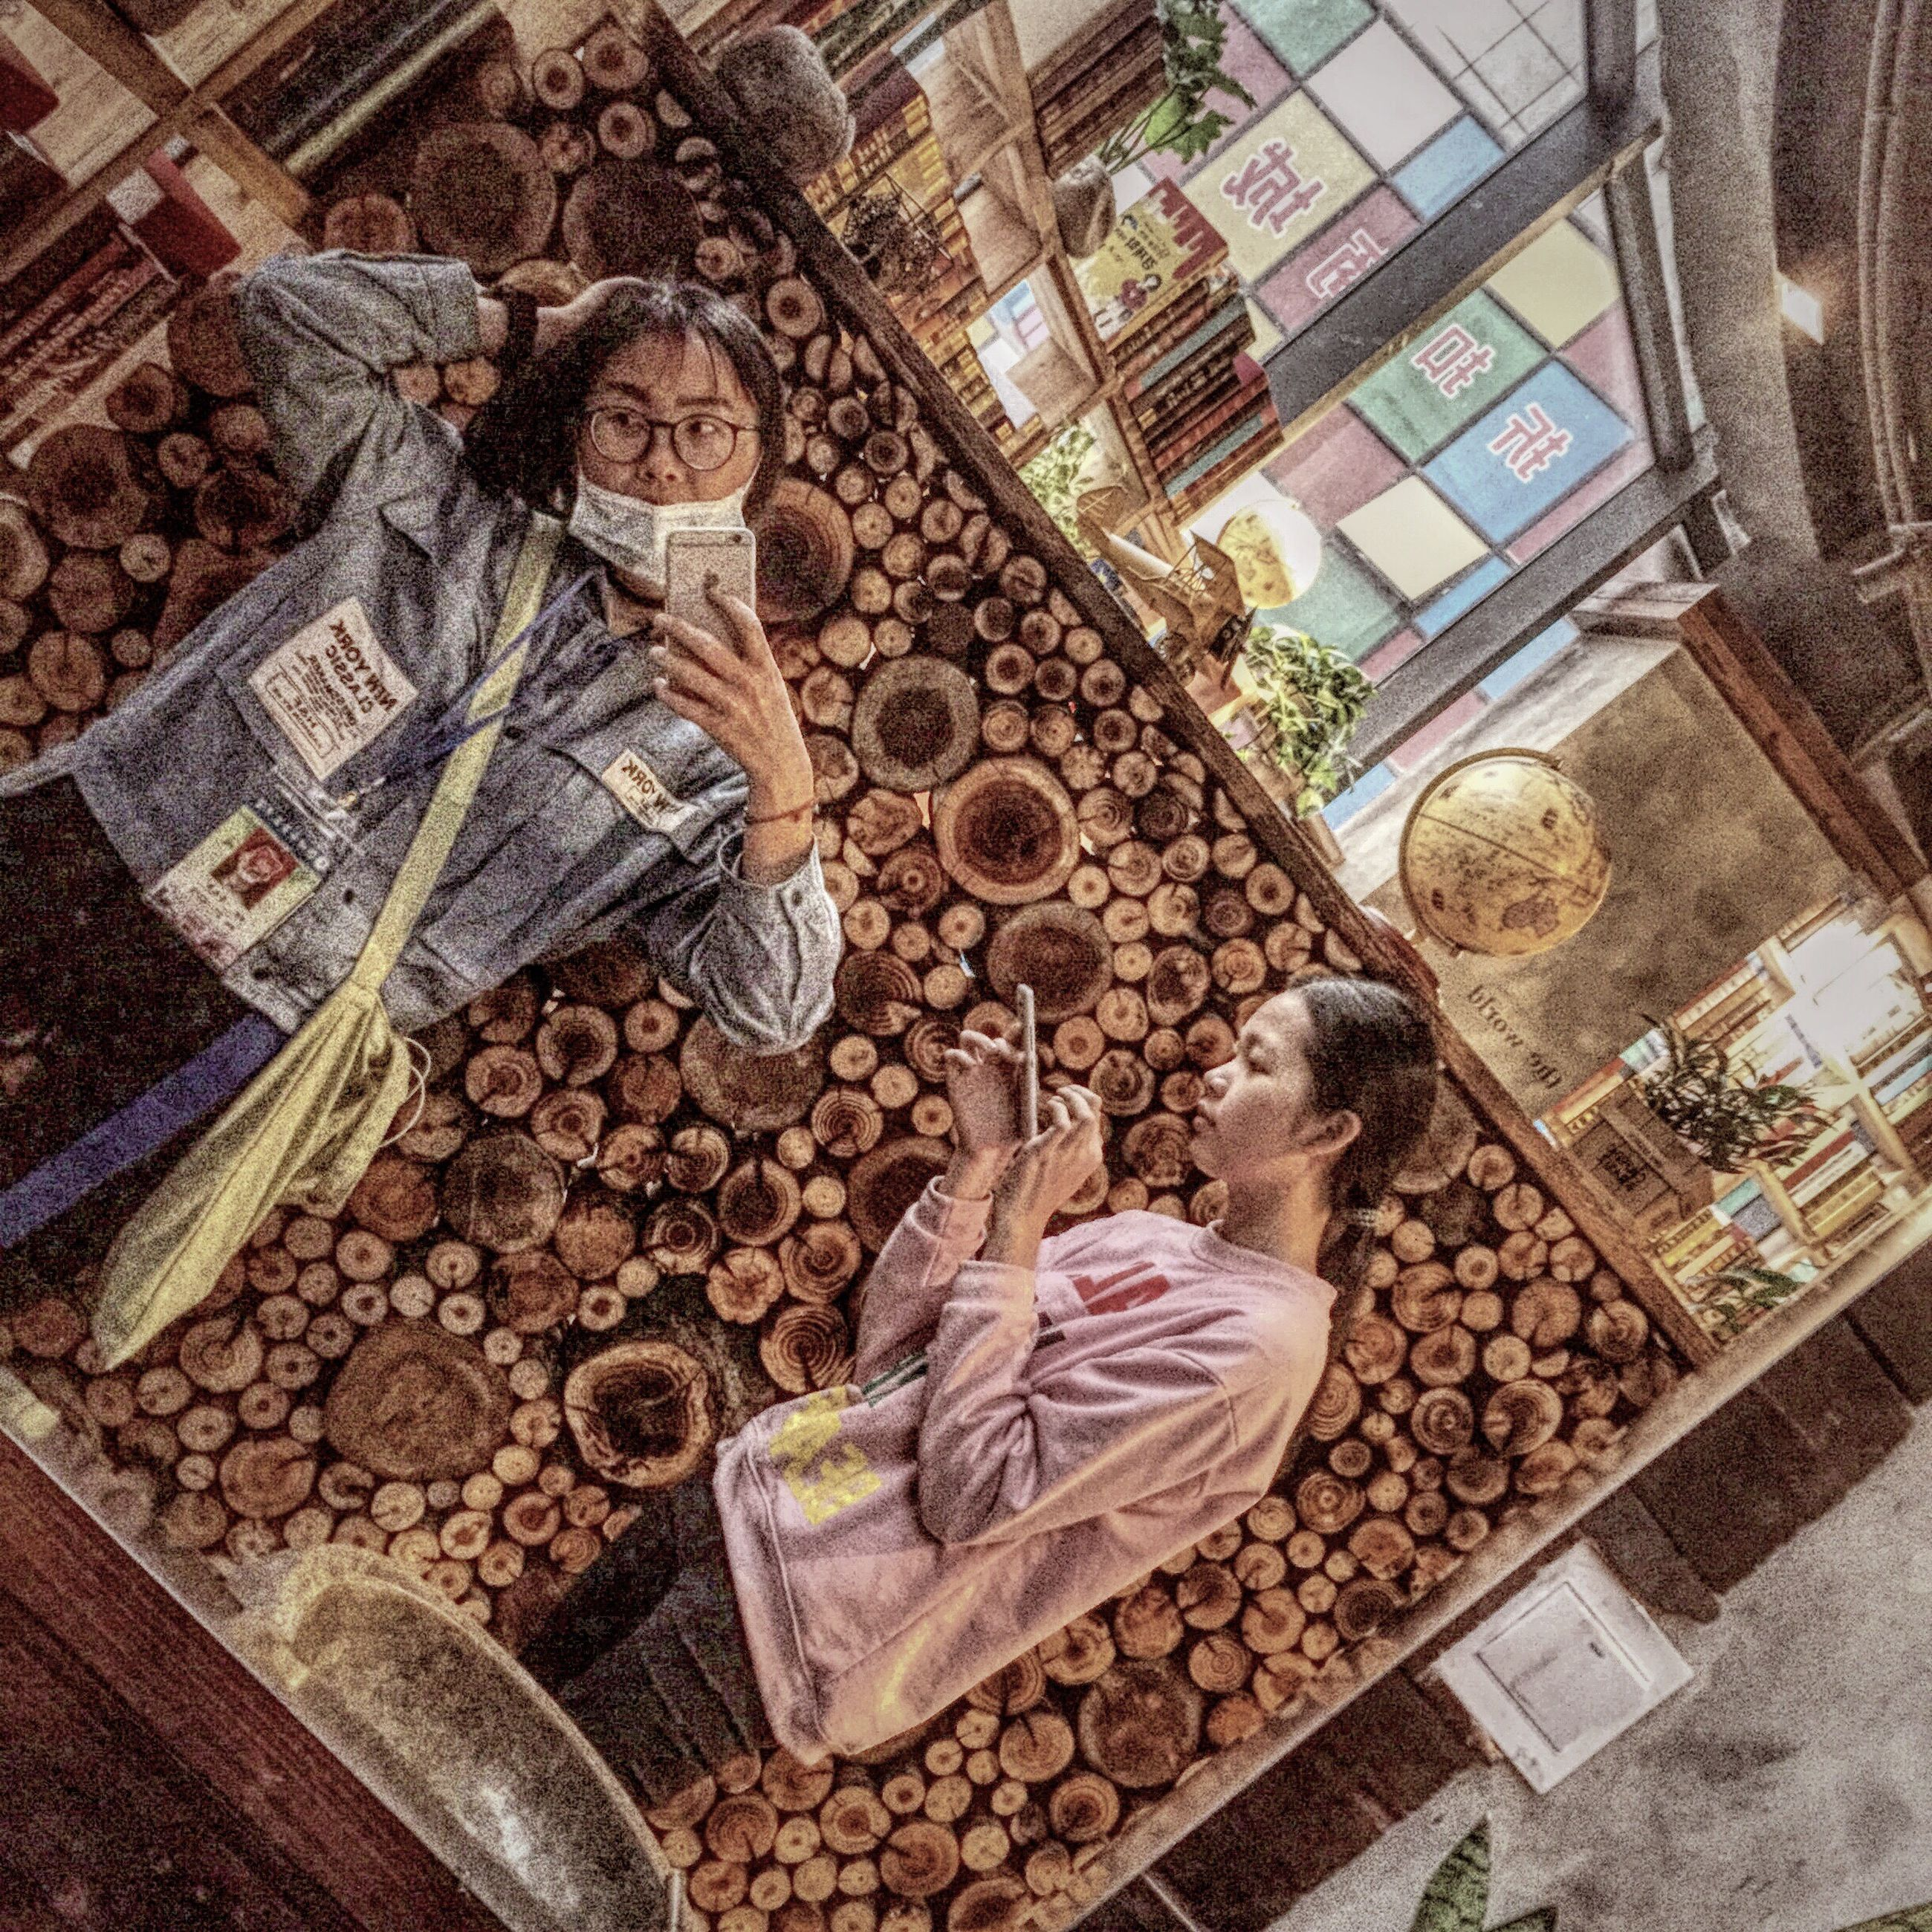 architecture, built structure, indoors, low angle view, art and craft, building exterior, art, religion, place of worship, creativity, window, spirituality, statue, human representation, sculpture, ornate, hanging, day